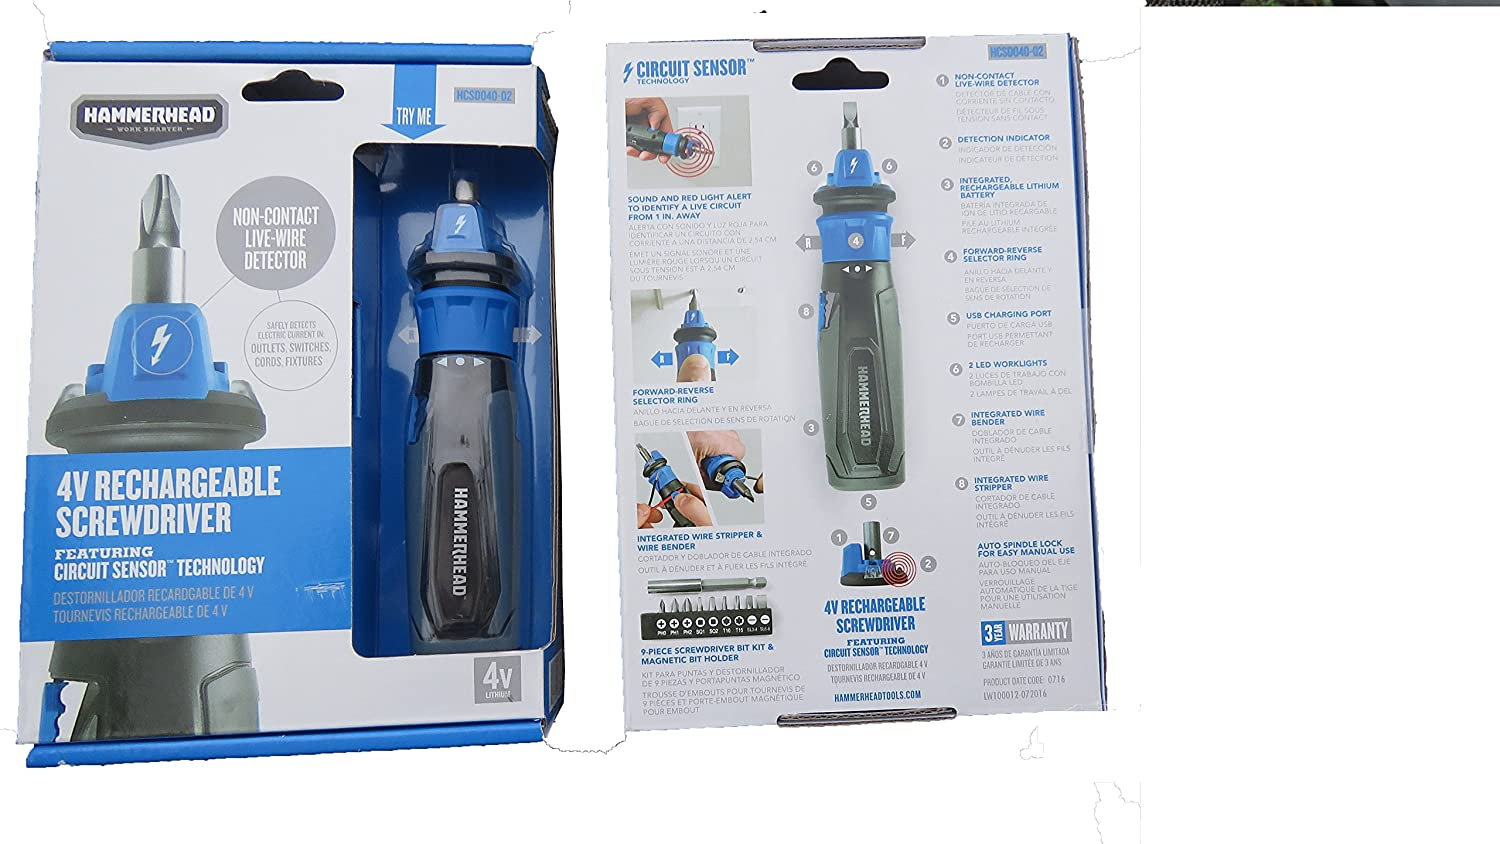 Rechargeable Screwdriver | Hammerhead Screwdriver | Hand Tools | Electric Hand Tools | Screwdriver - - Amazon.com